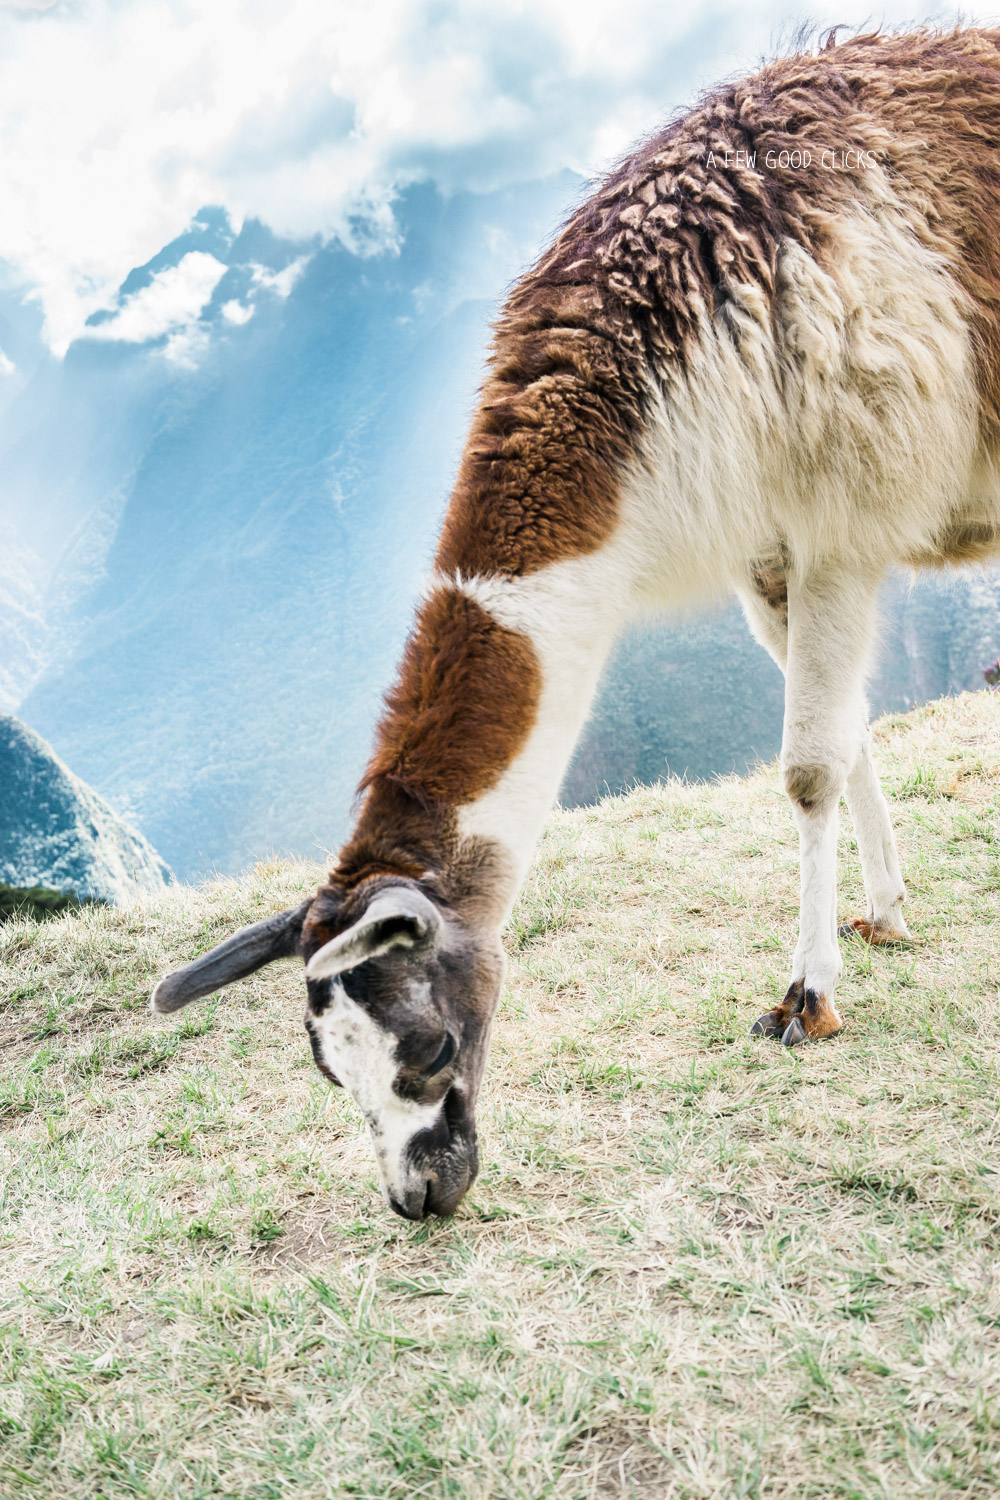 Llama on the top of Machu Picchu